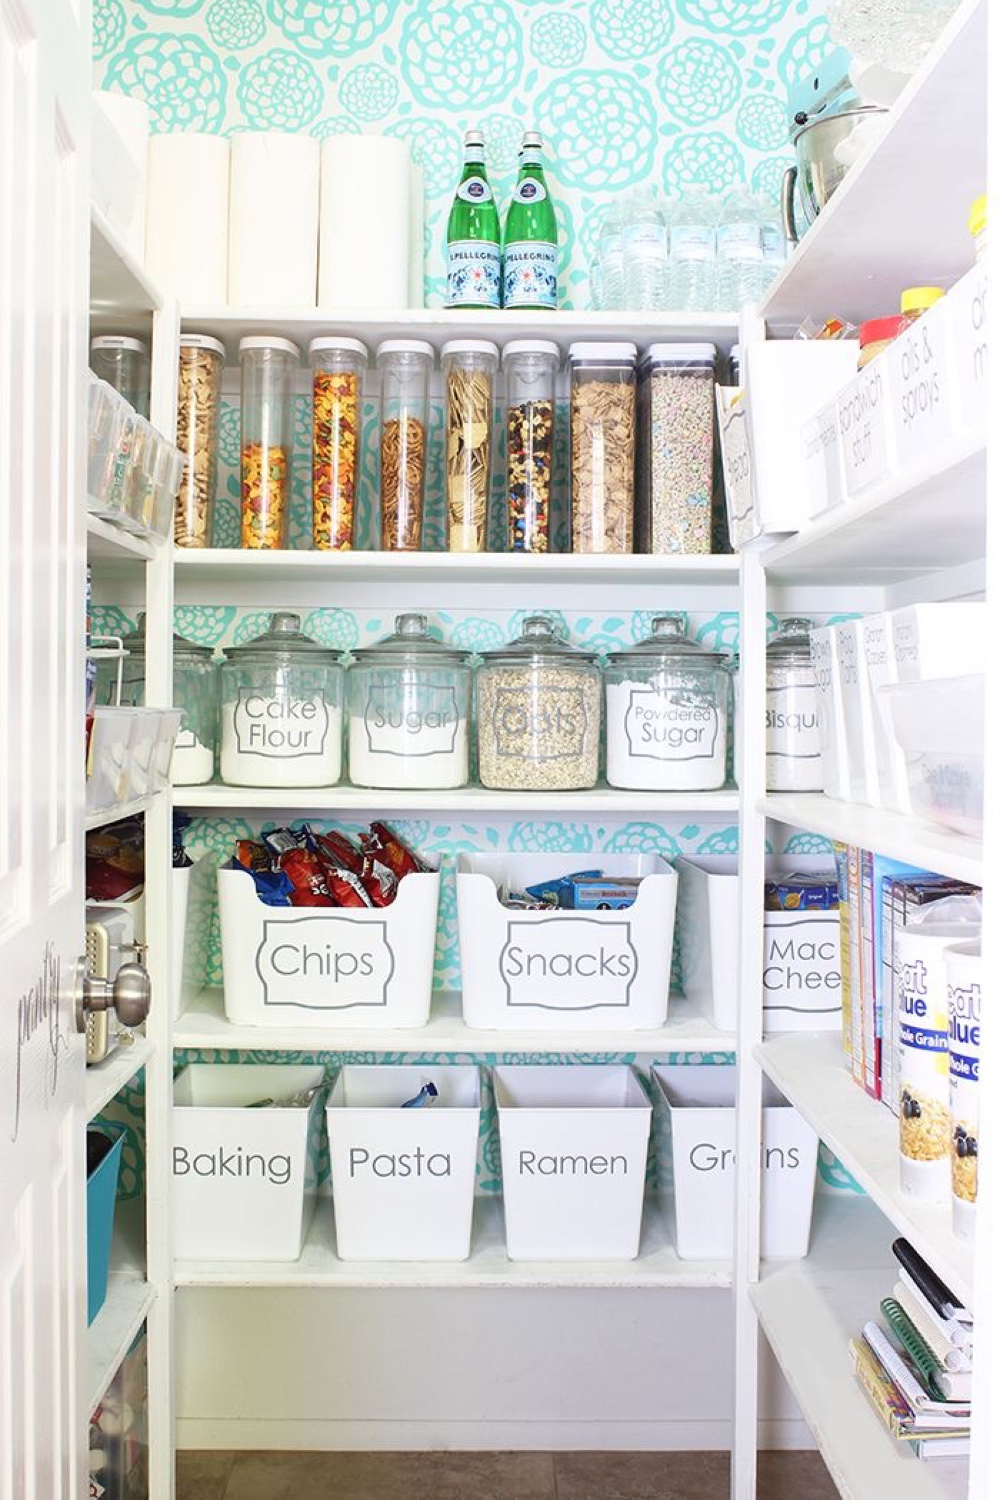 best kitchen organization ideas kitchen organization ideas Practical Kitchen Organization Ideas Must Include Labeled Canisters and Containers